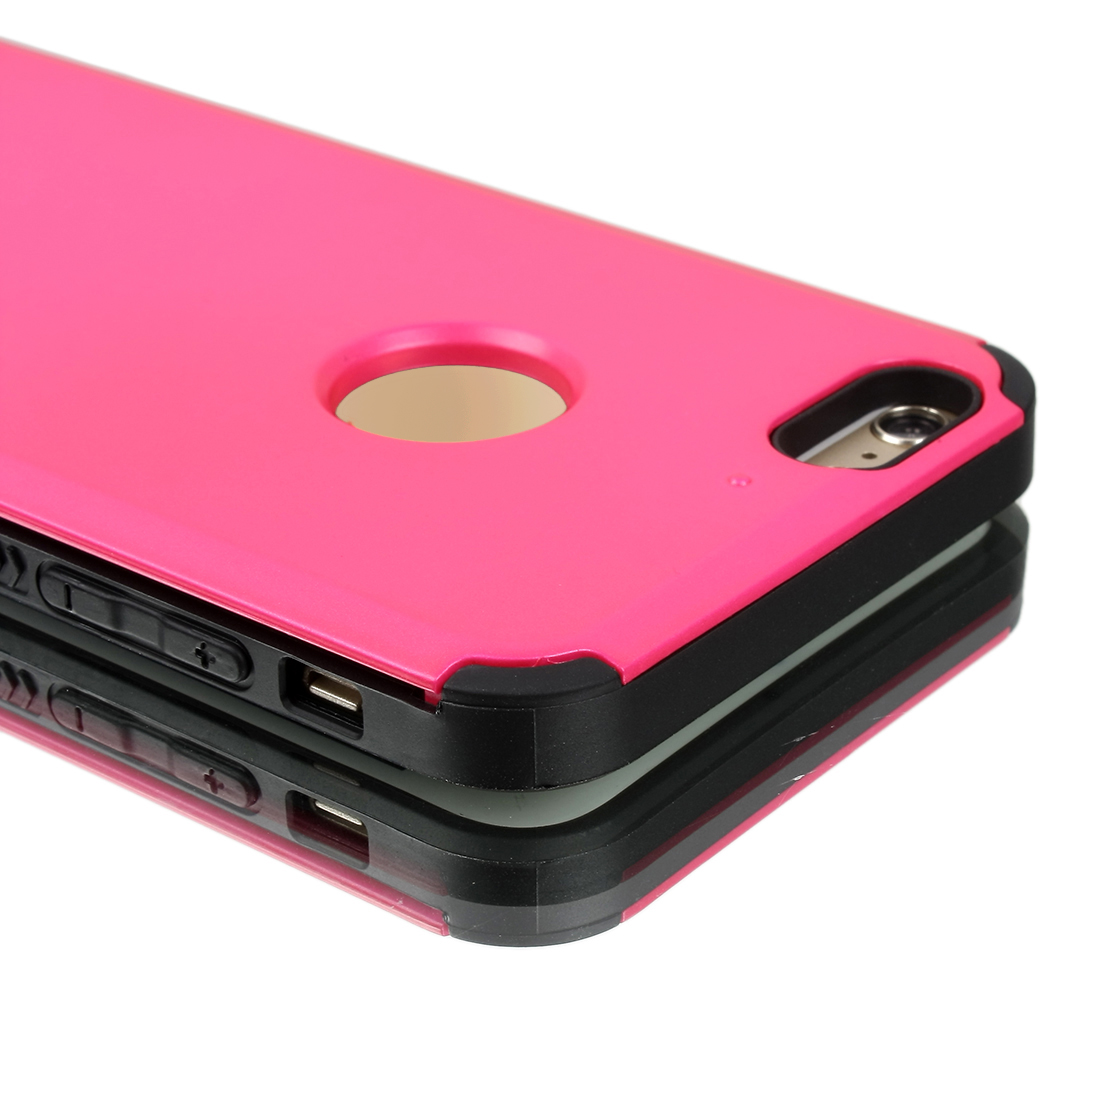 Card Pocket ShockProof Slim Hybrid Wallet Case Cover Fuchsia for iPhone 6 Plus 5.5""